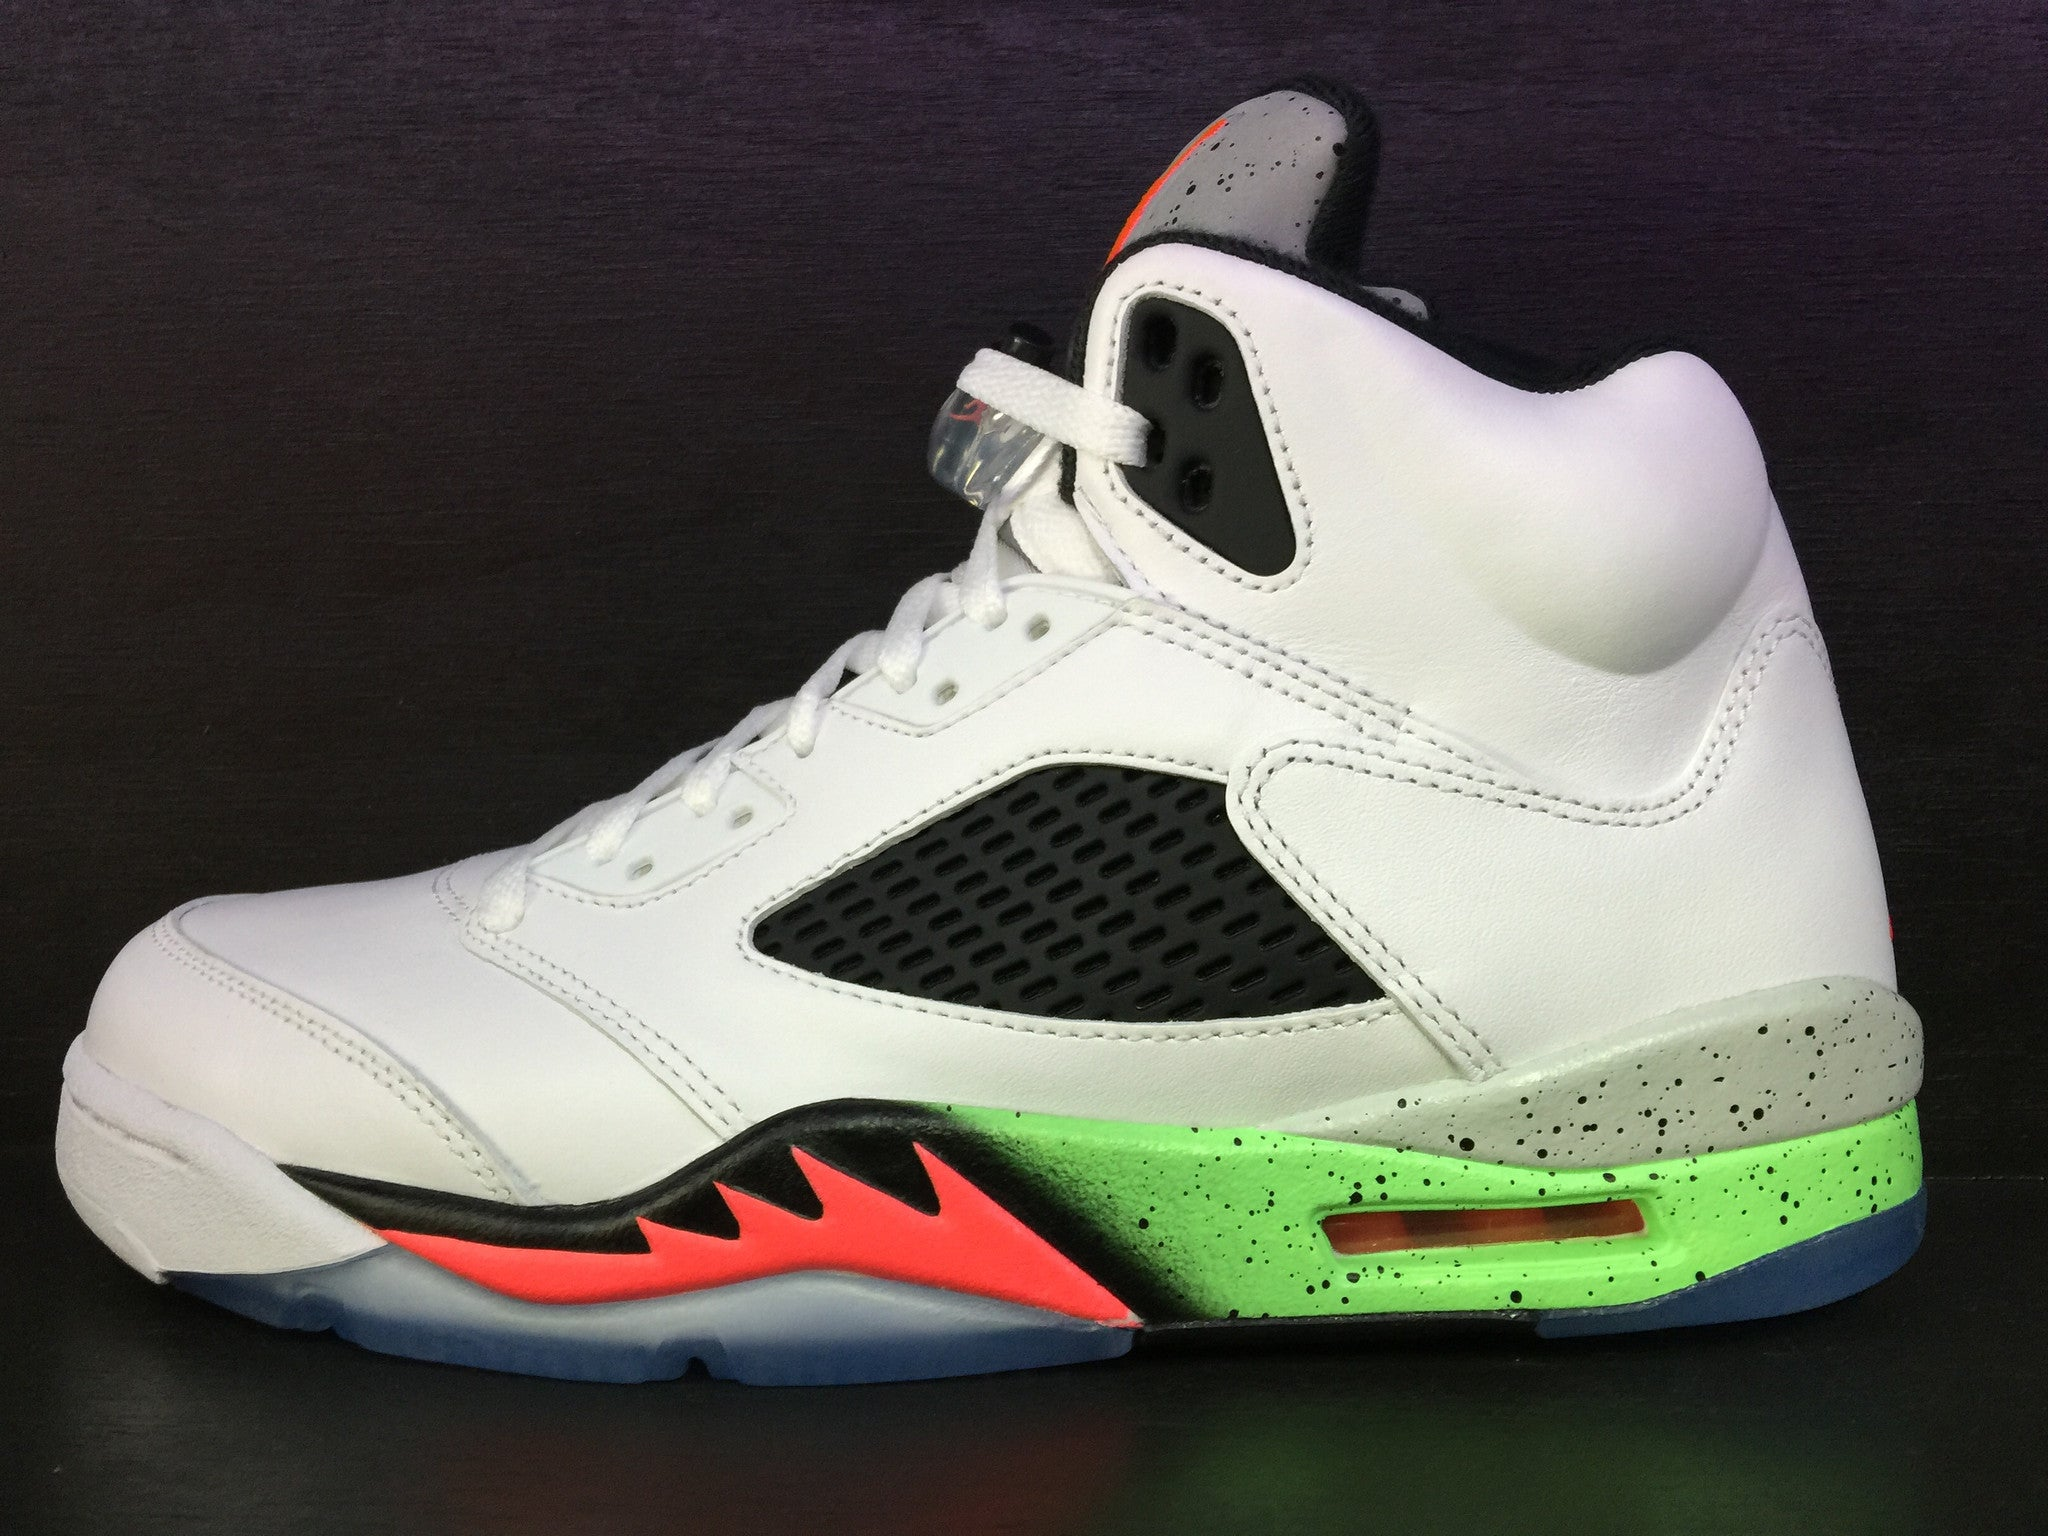 Air Jordan 5 Retro 'Space Jam'